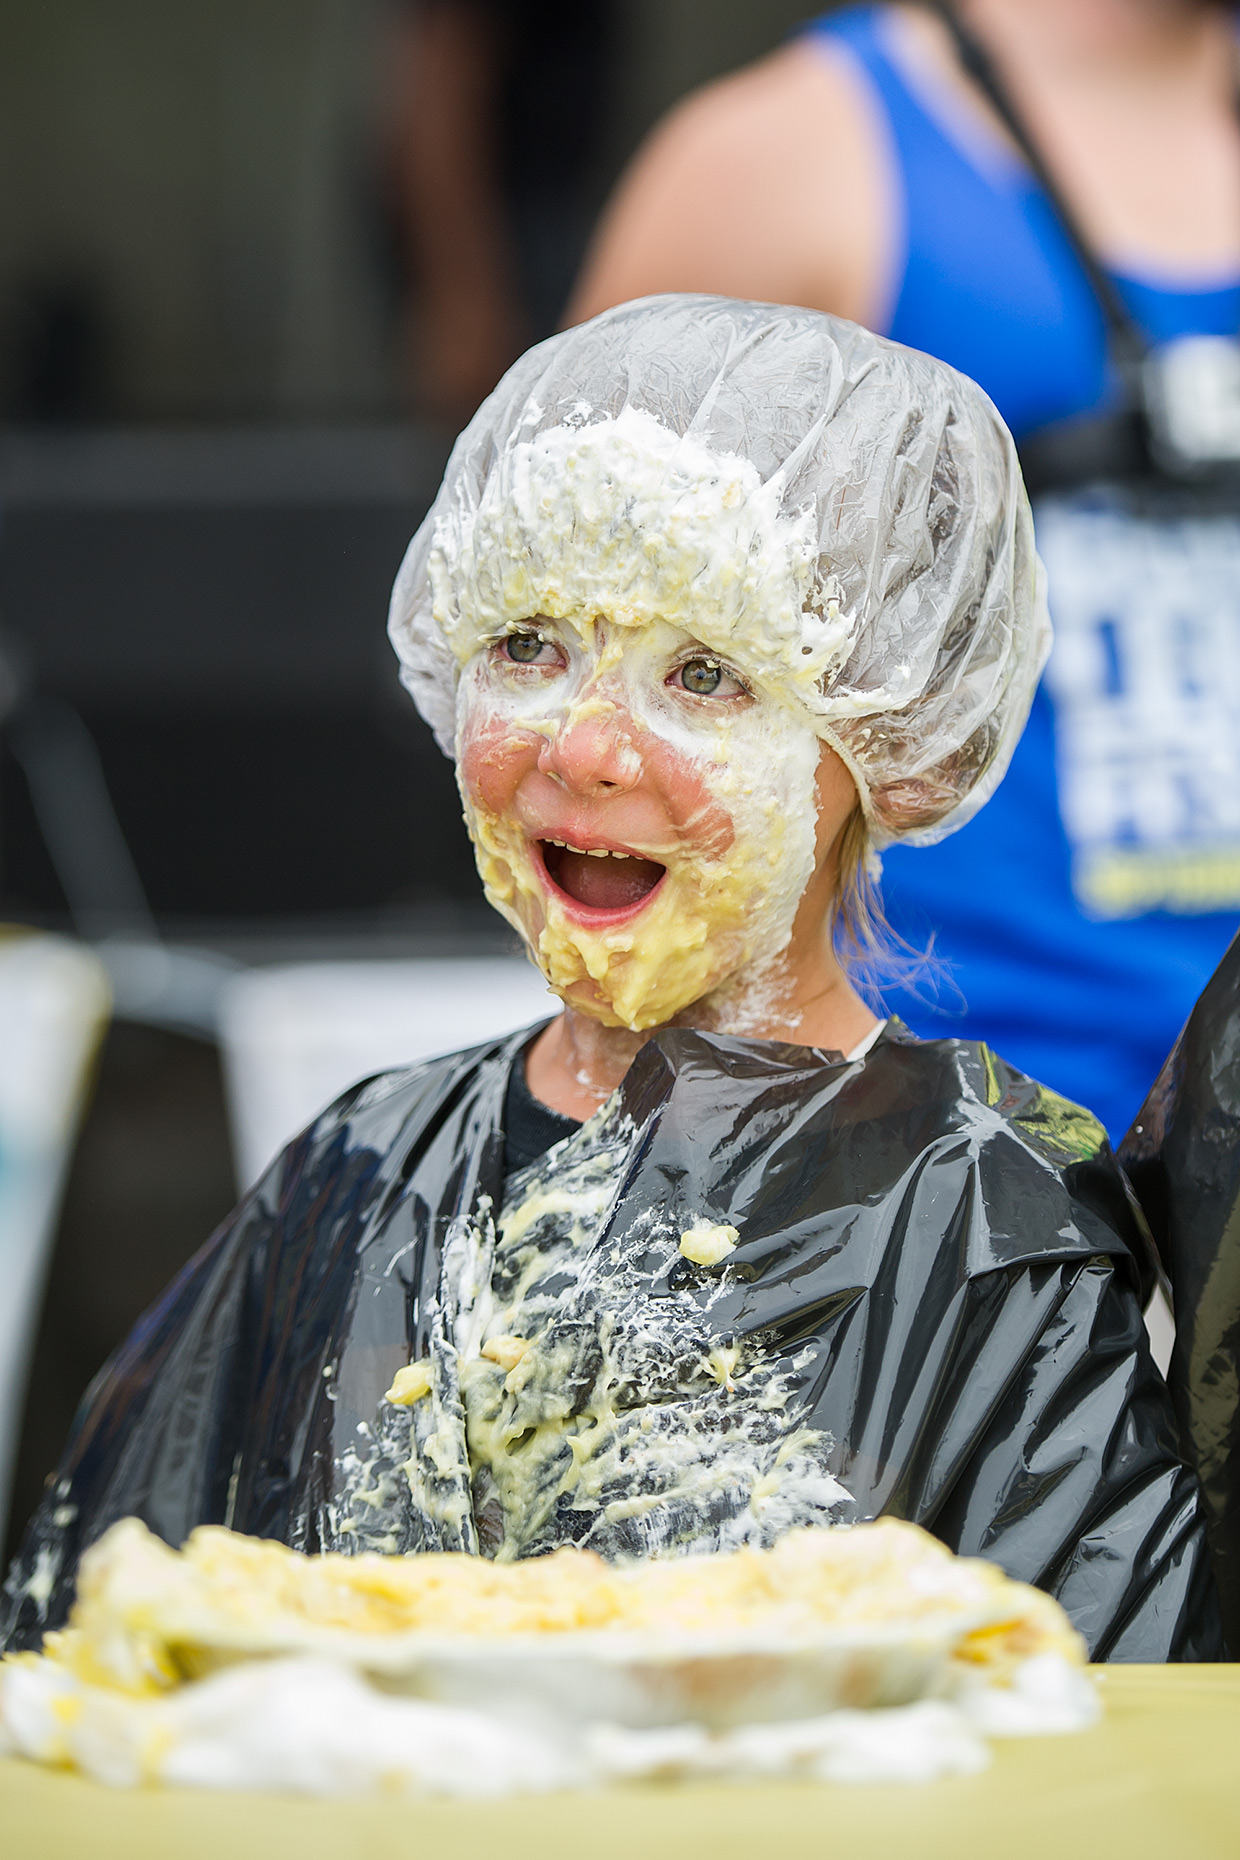 LAT_pie-eating-contest-at-california-lemon-festival-in-goleta-california